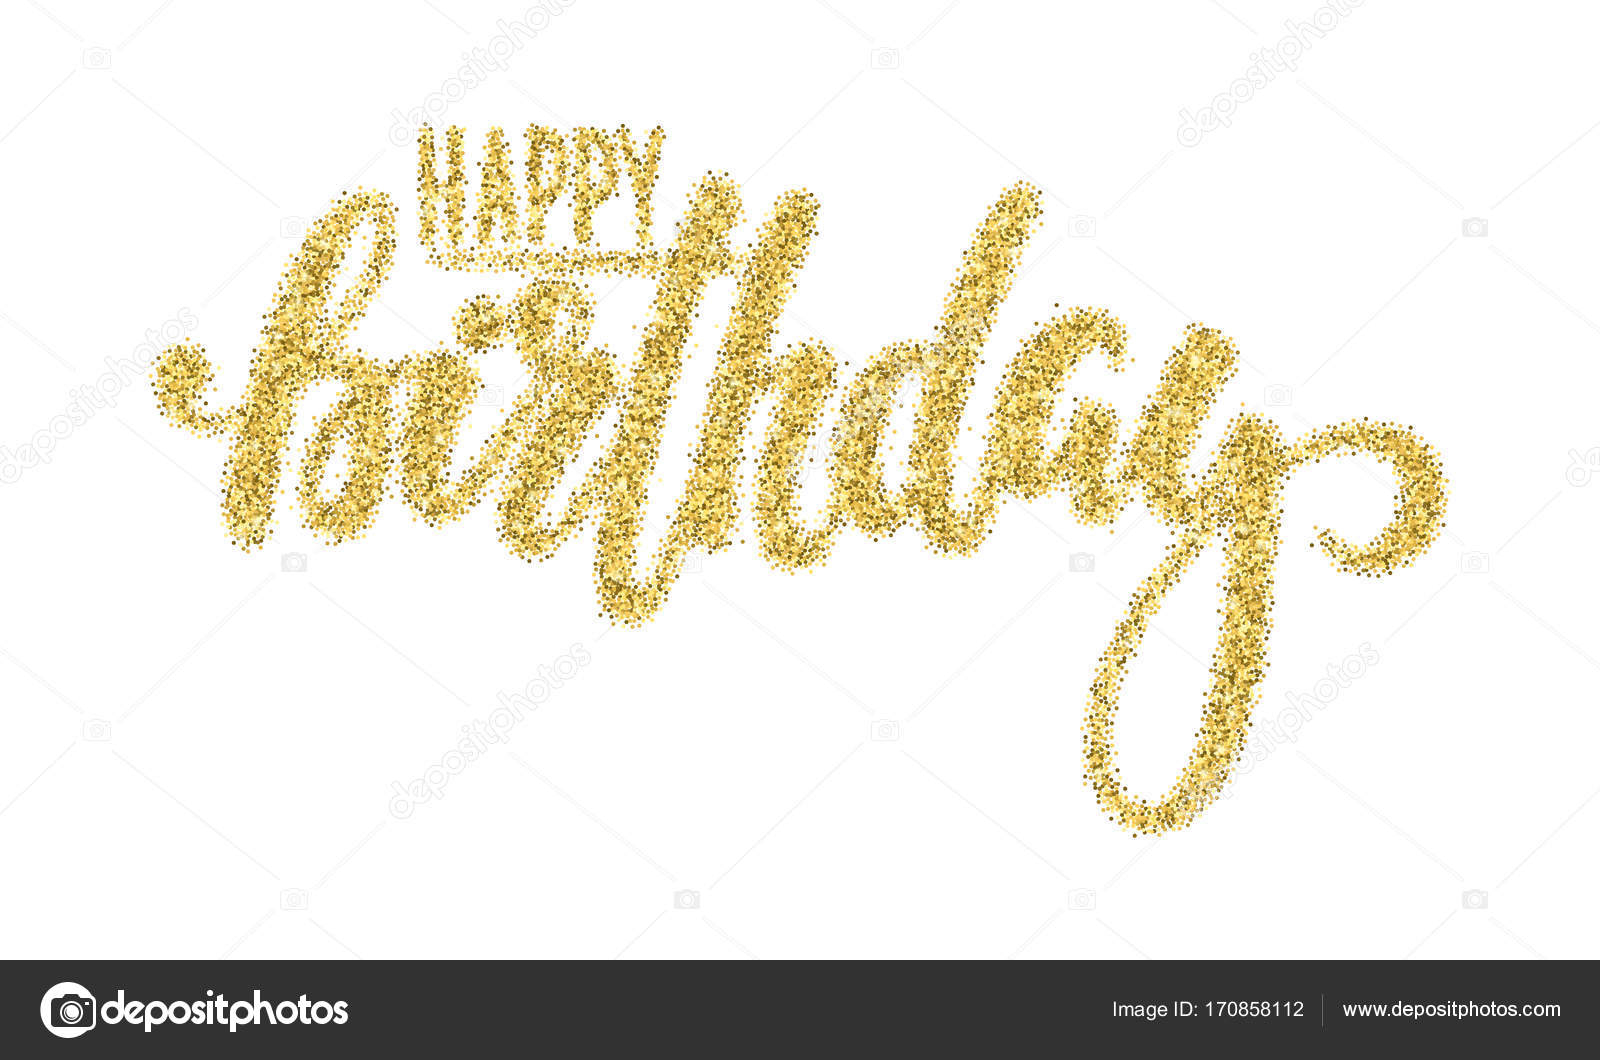 Happy birthday gold sparkles glitter effect hand drawn